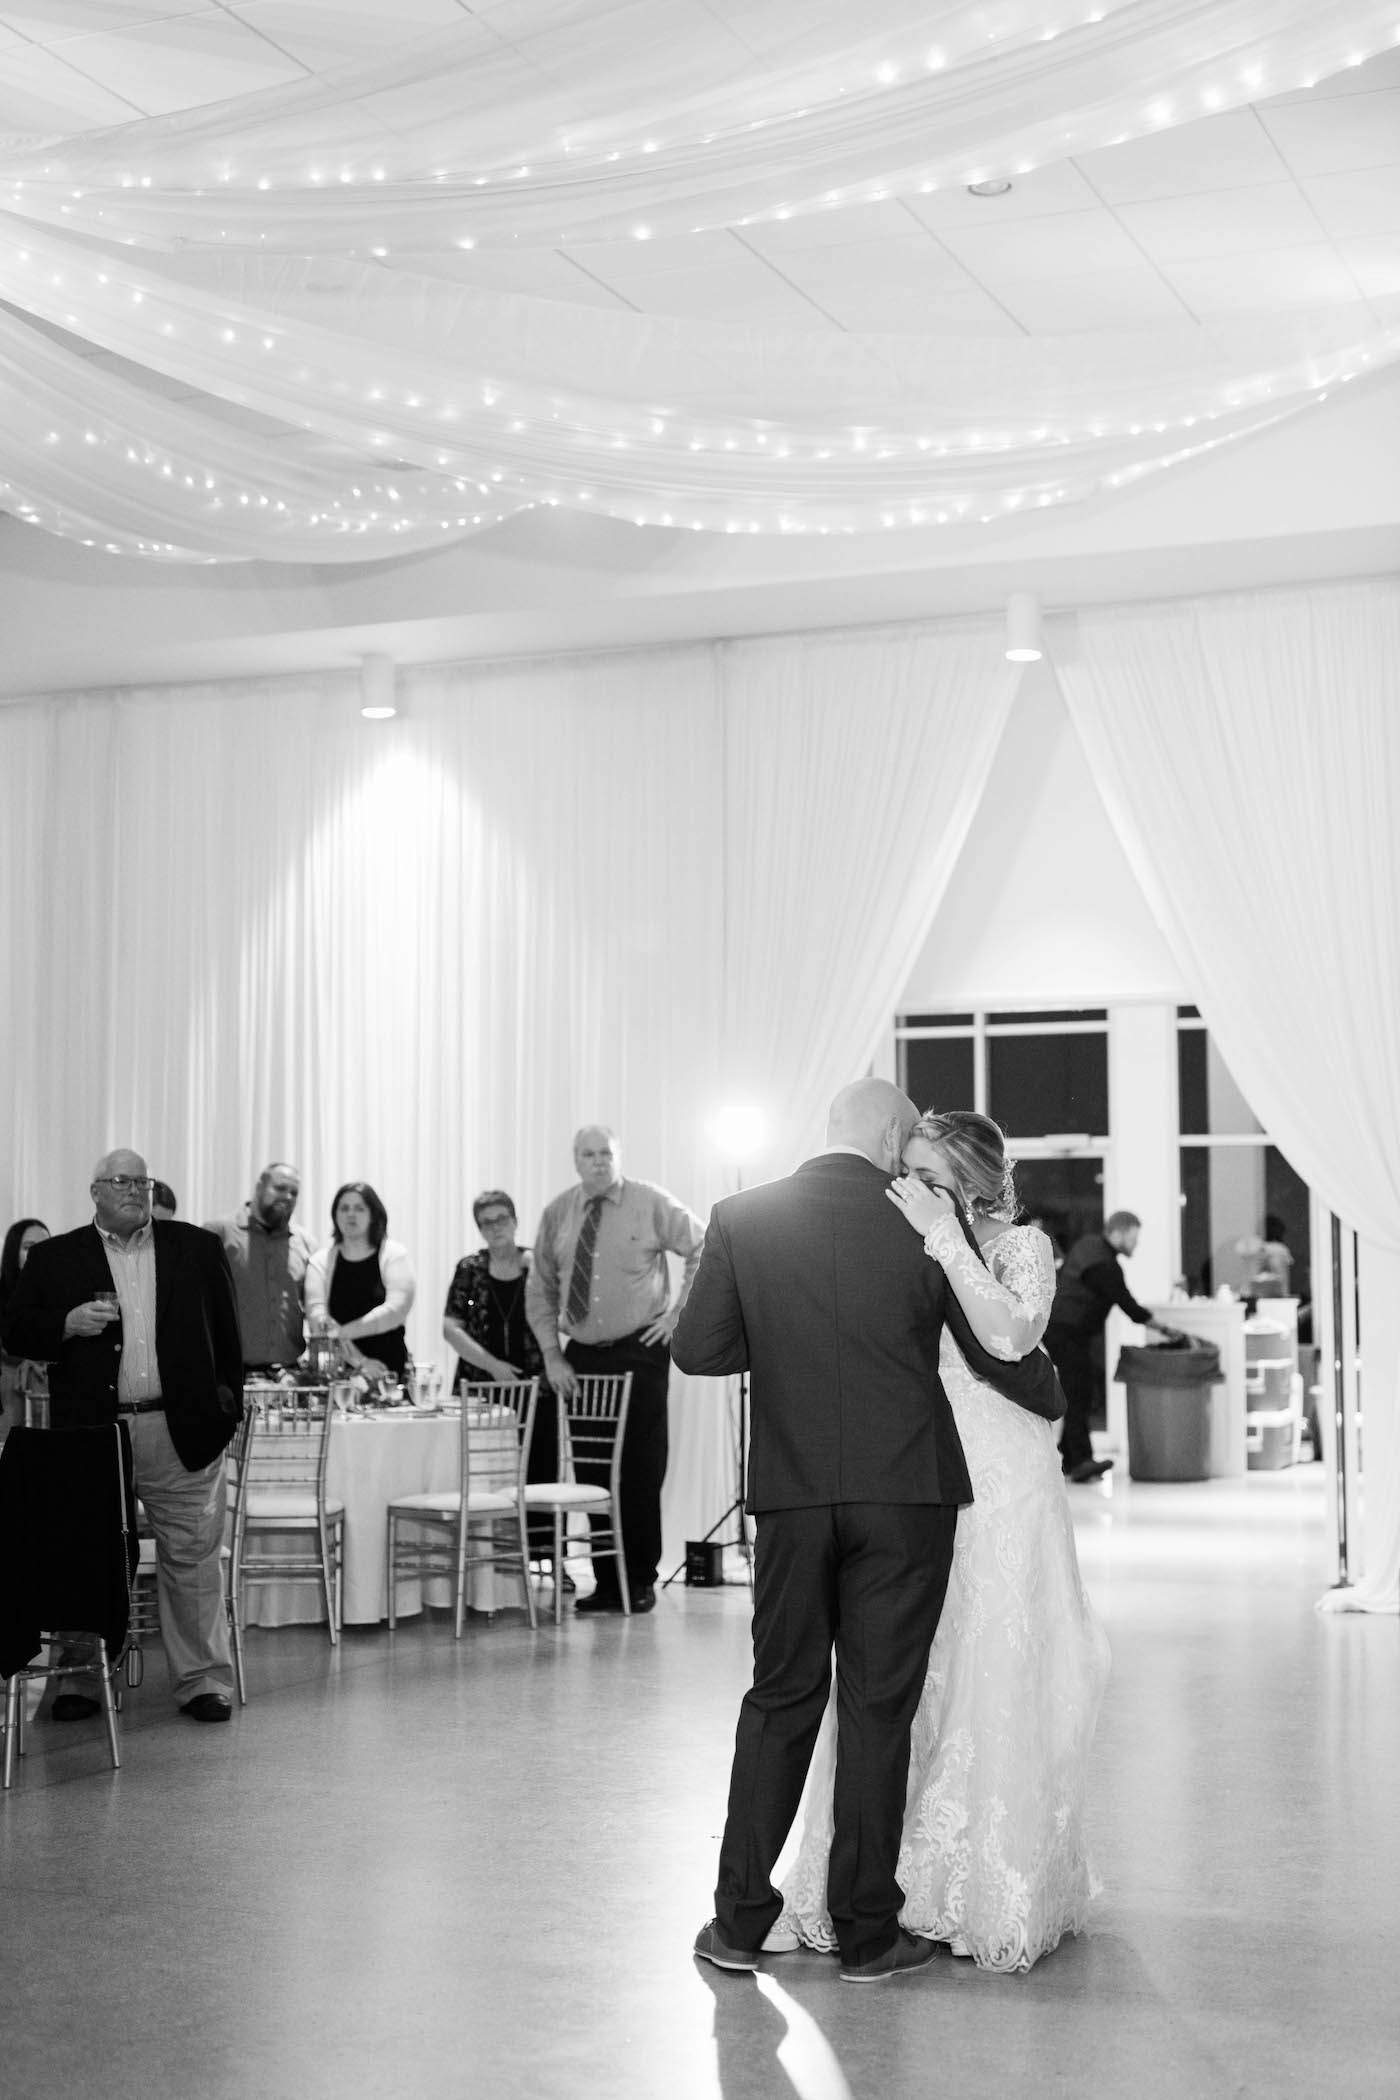 Bride and Groom First Dance Photo   Black and White Photography Wedding Portrait   Tampa Wedding Venue the Tampa Garden Club